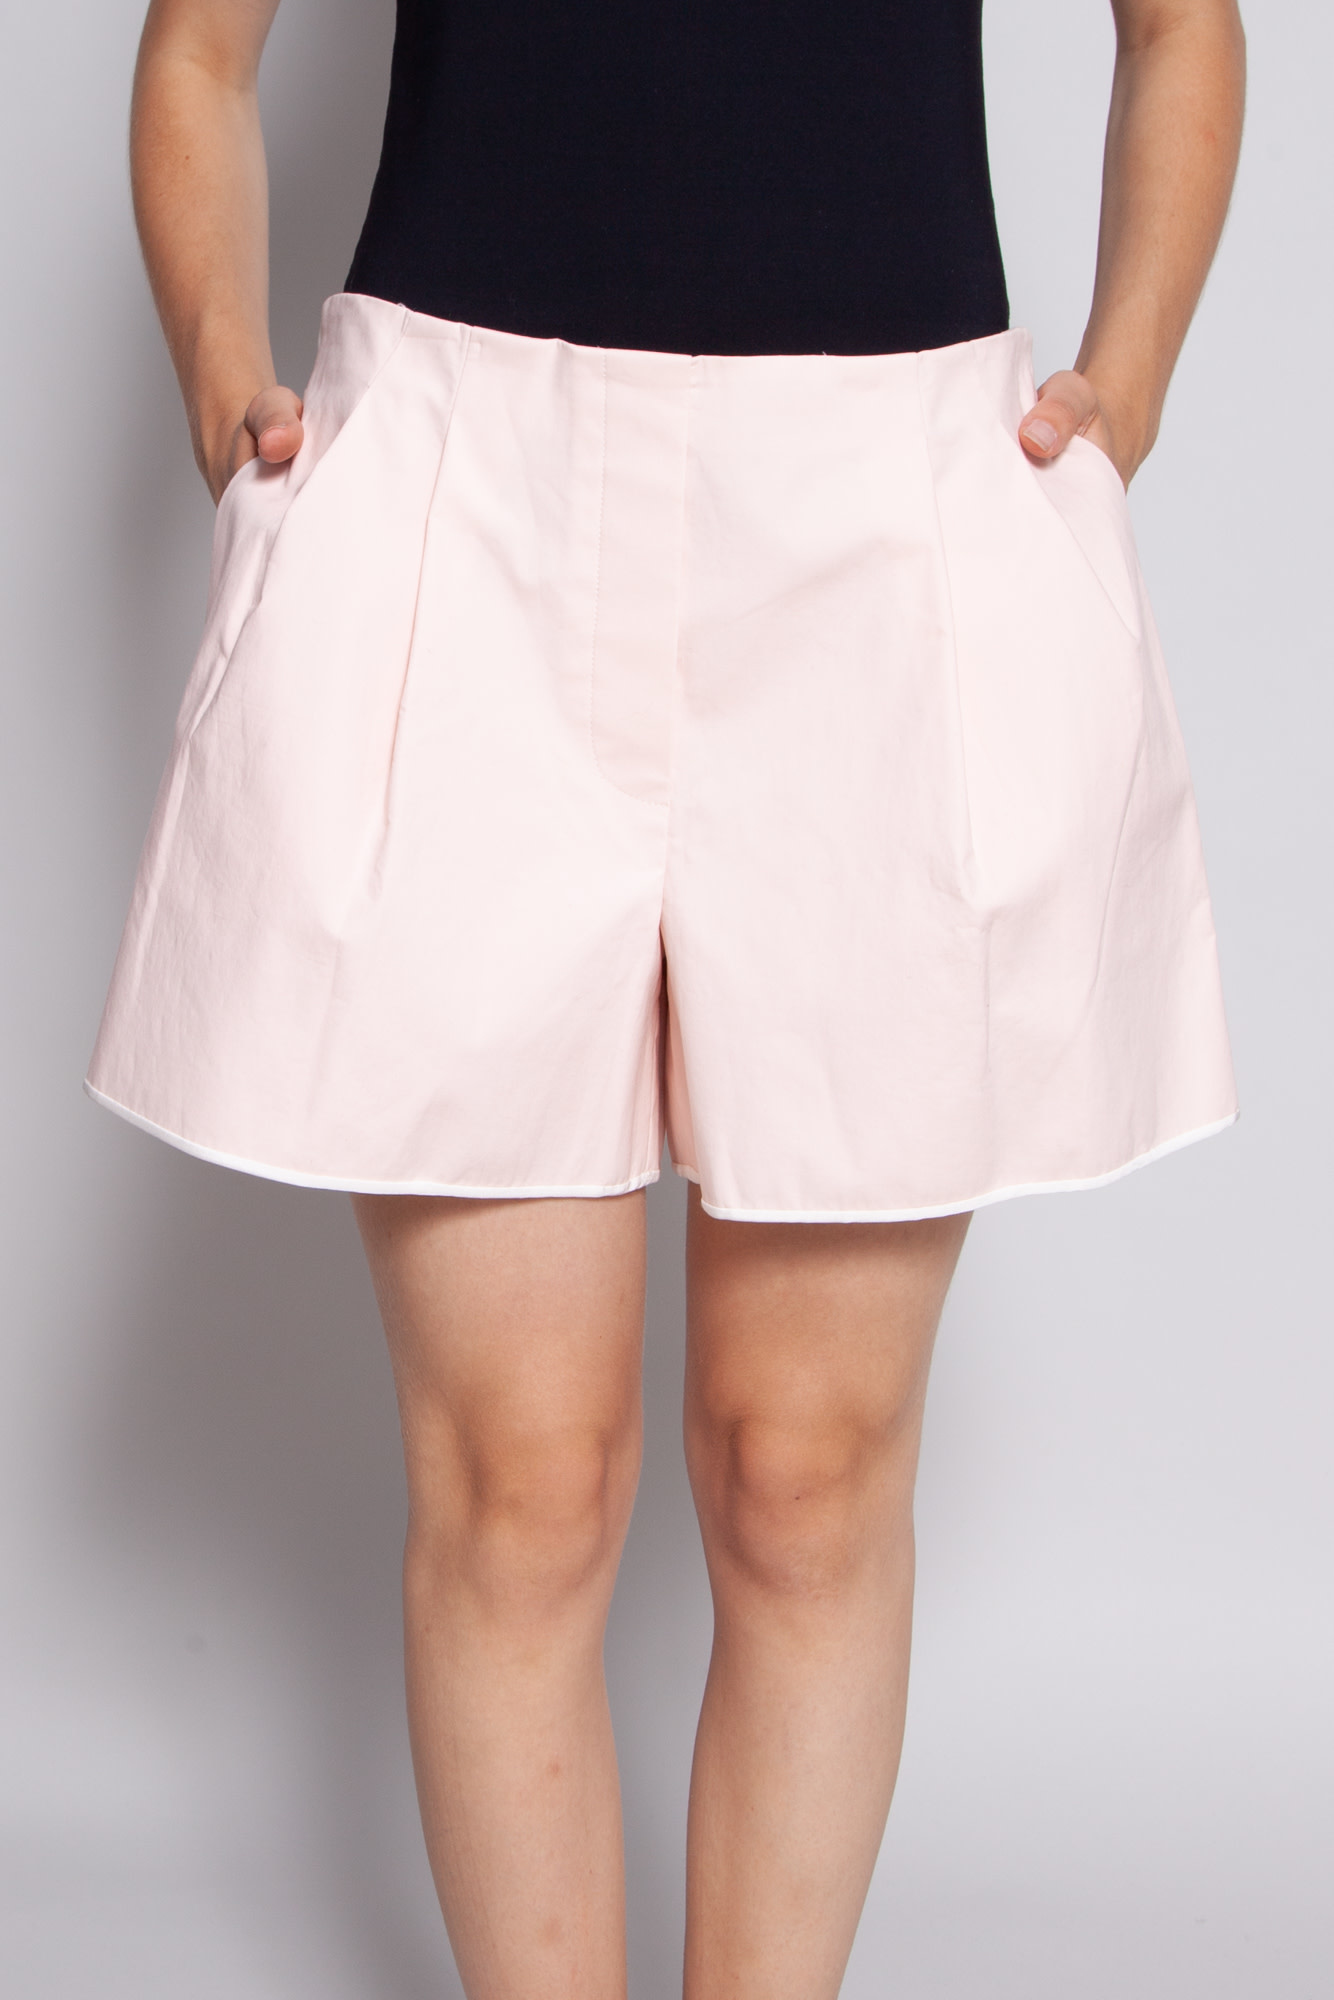 3.1 Phillip Lim LIGHT PINK SHORTS - NEW WITH TAG